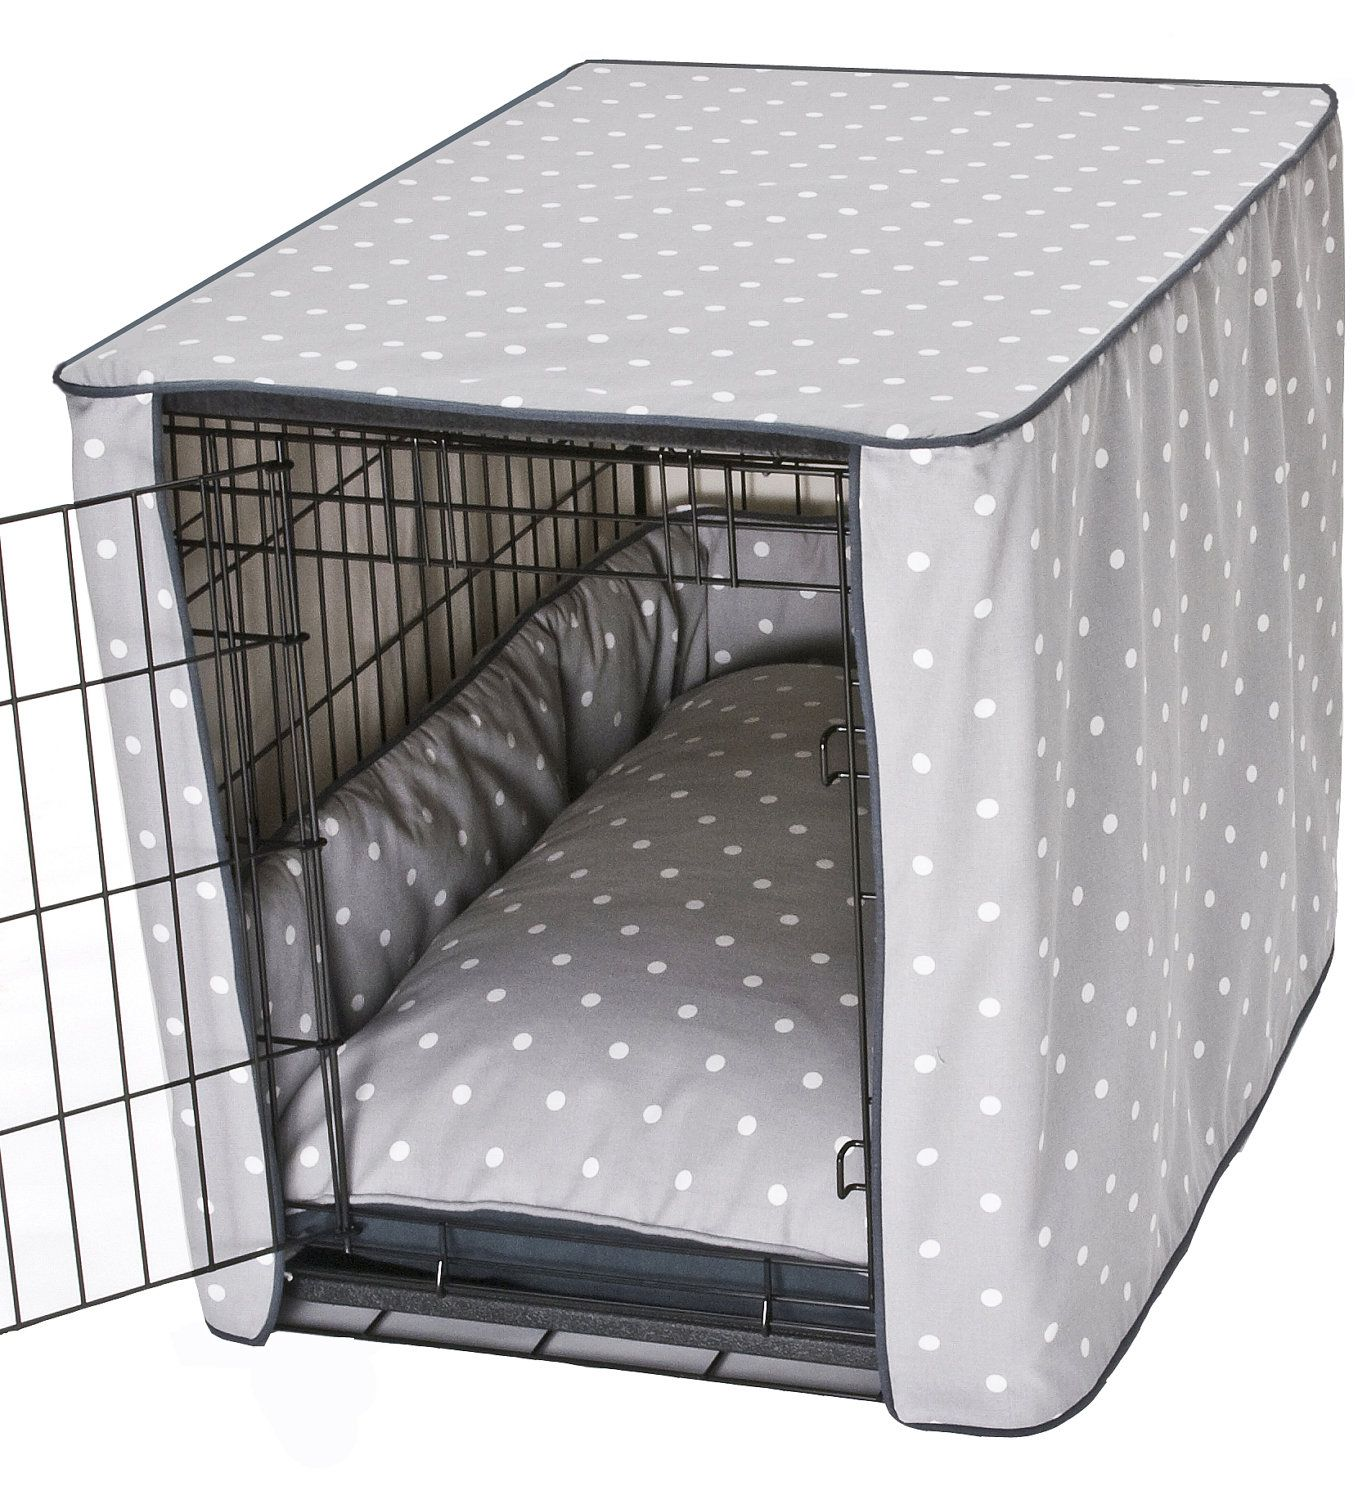 diy dog crate cover tutorial